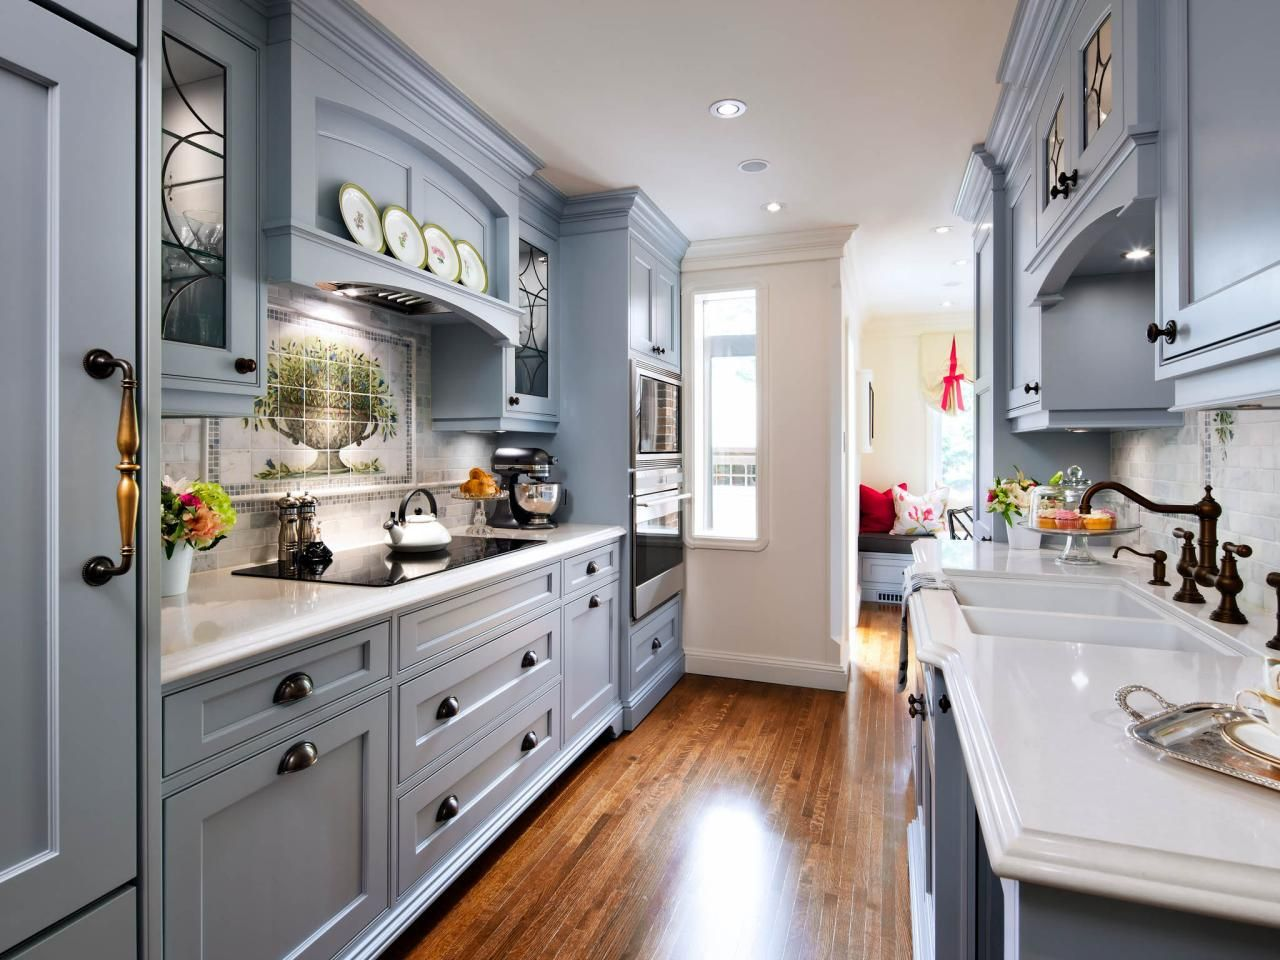 pictures of the year s best kitchens nkba kitchen design finalists for 2014 kitchen ideas on kitchen remodel galley style id=94536